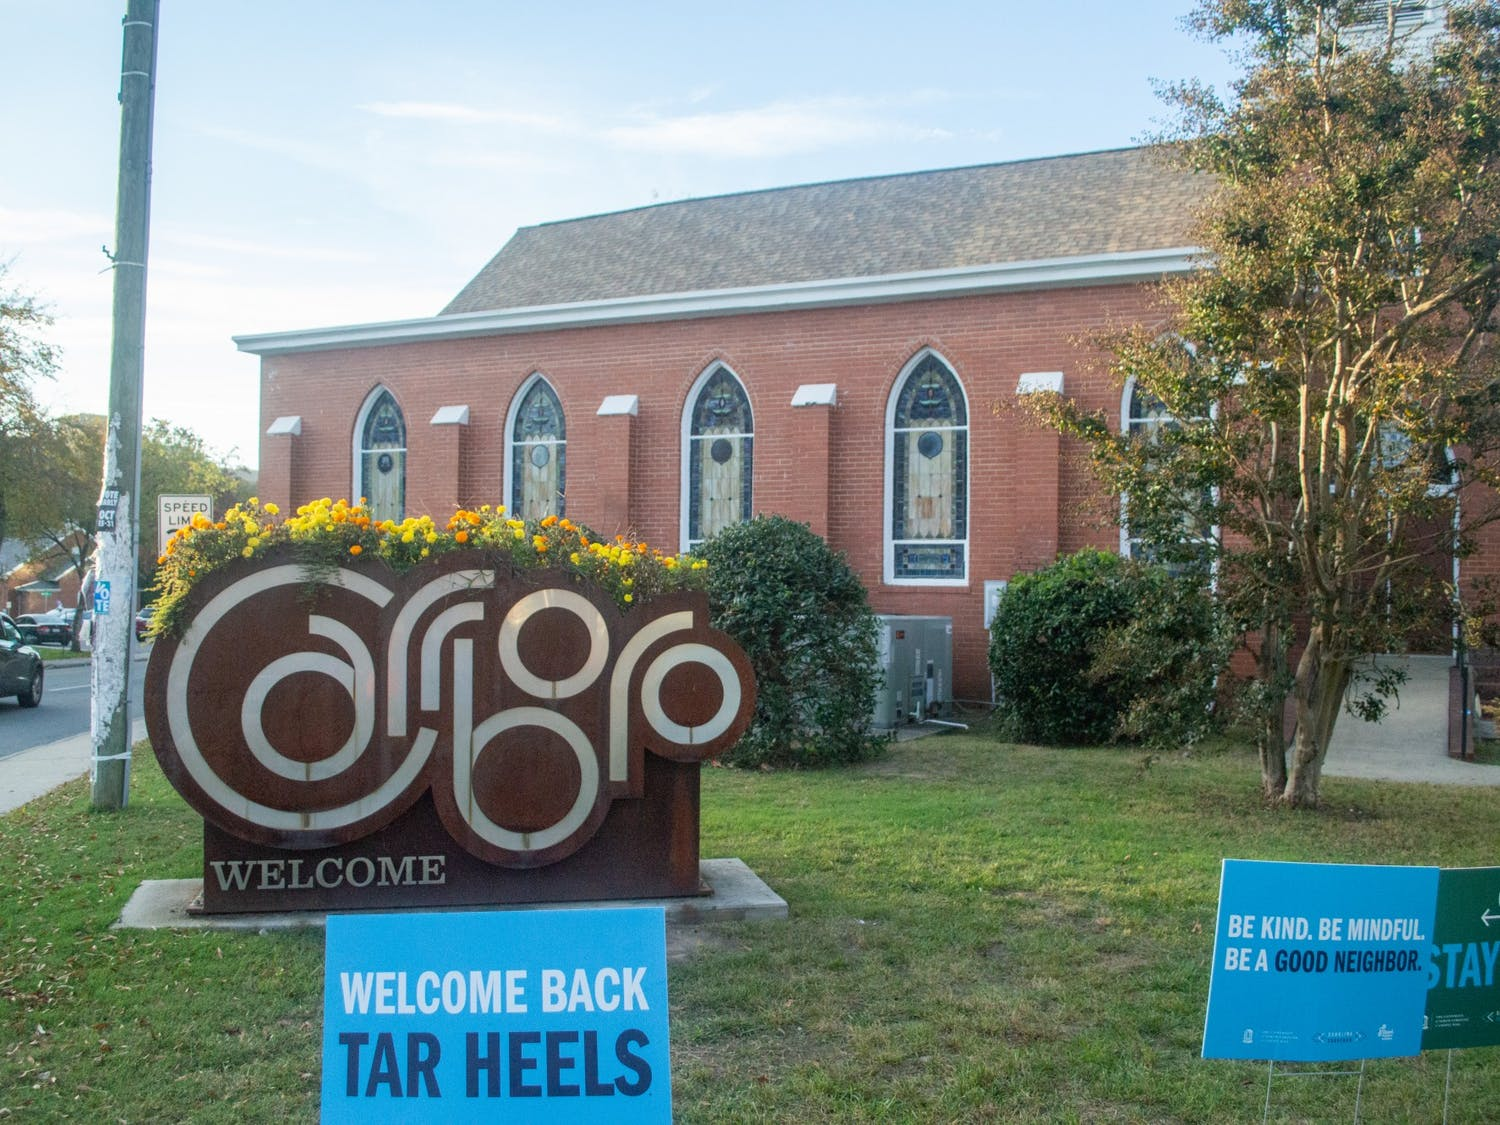 The Town of Carrboro sign as pictured on Oct. 21 2020.